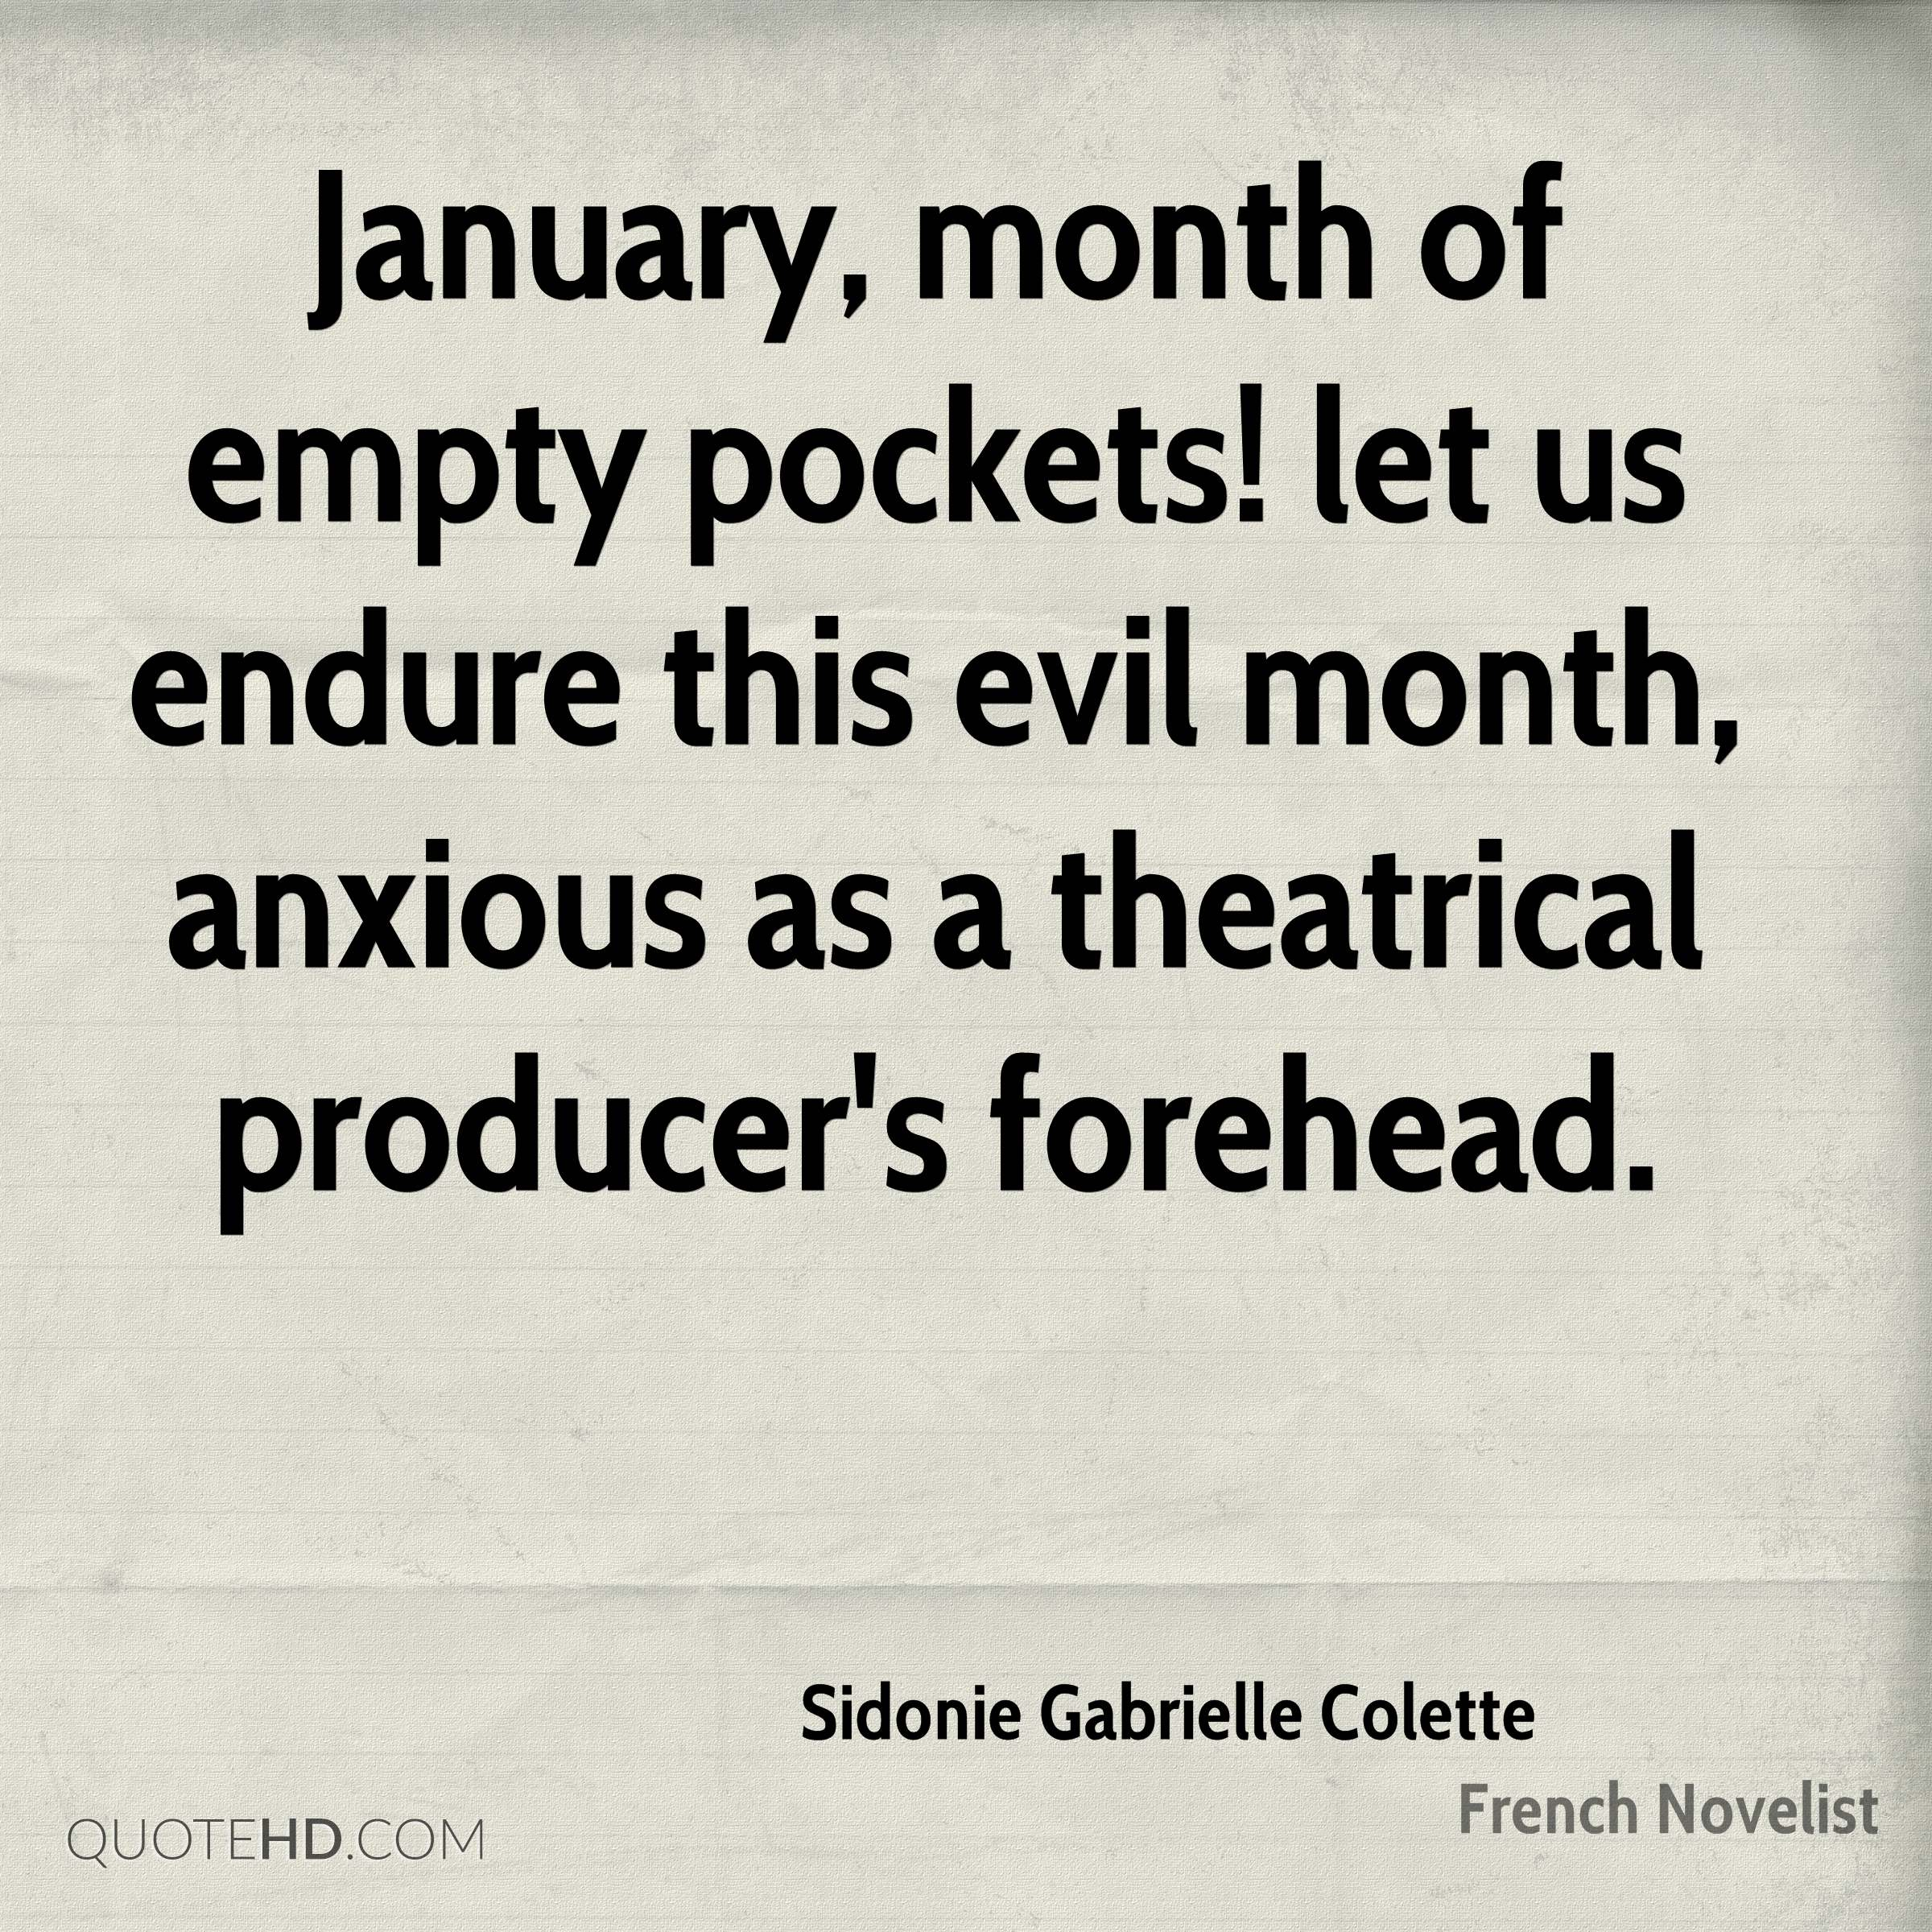 Quotes January Sidonie Gabrielle Colette Quotes  Quotehd